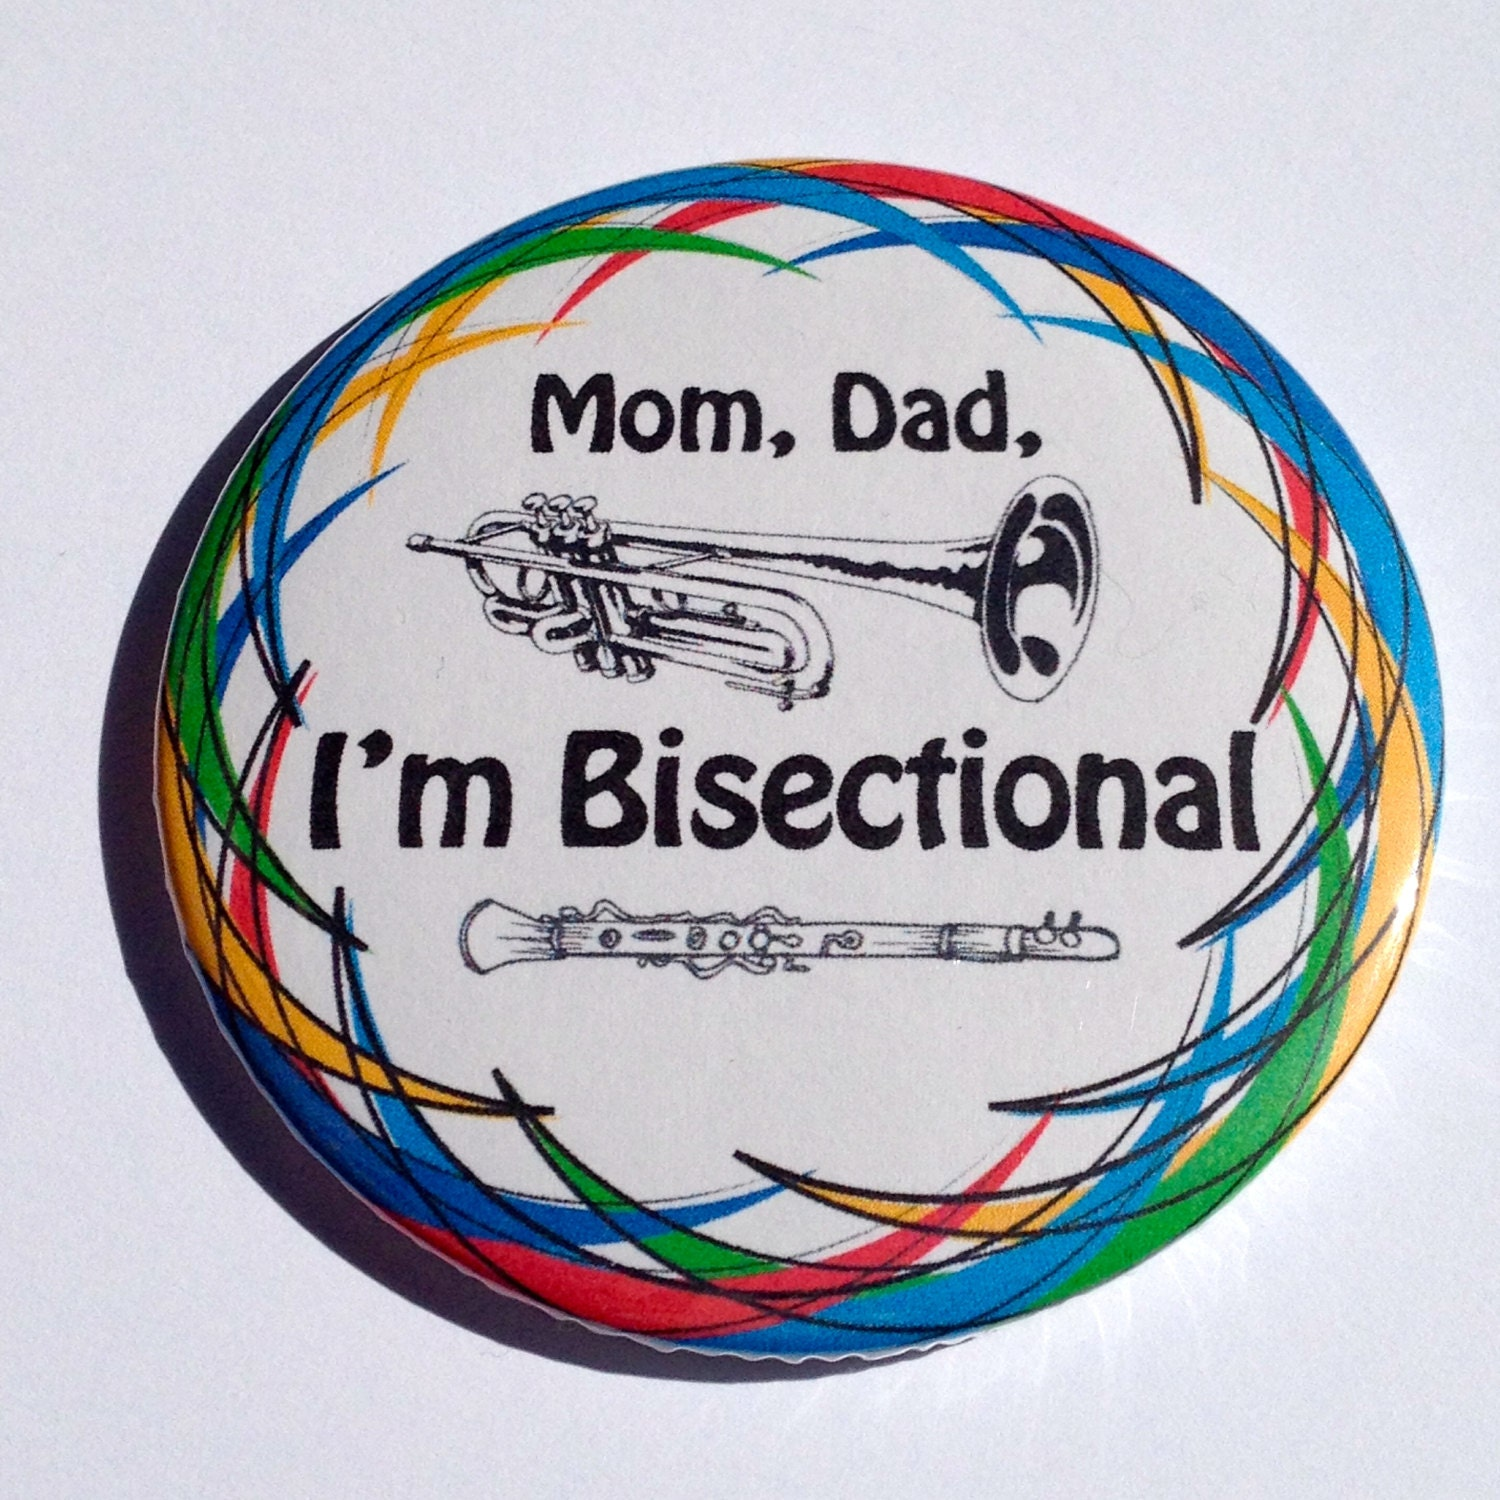 I'm bisectional, Pinback Badge, Large Button, Marching Band